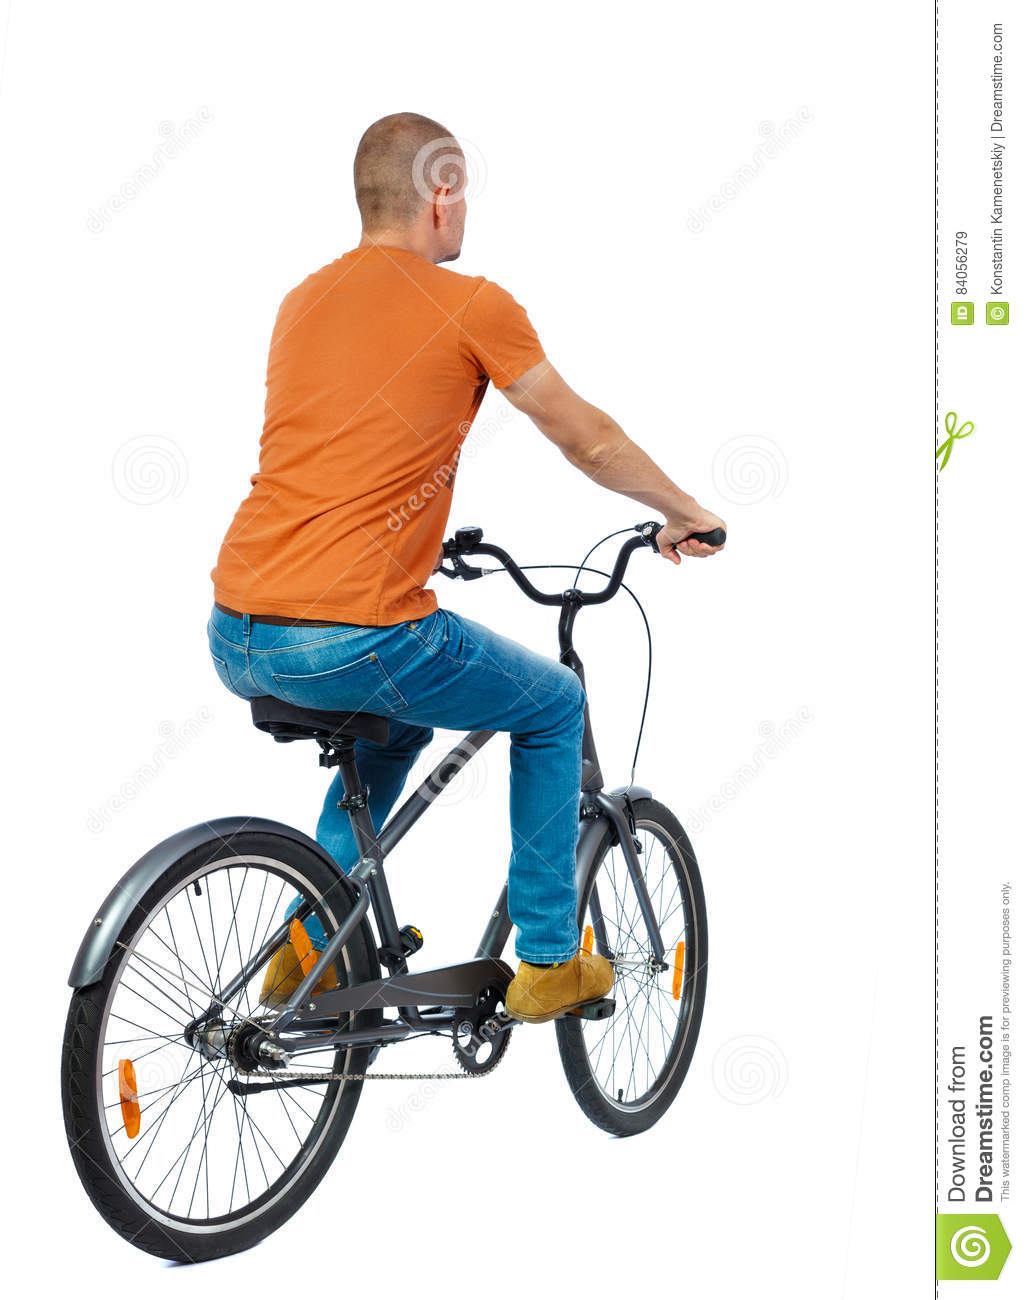 Back view of a man with a bicycle